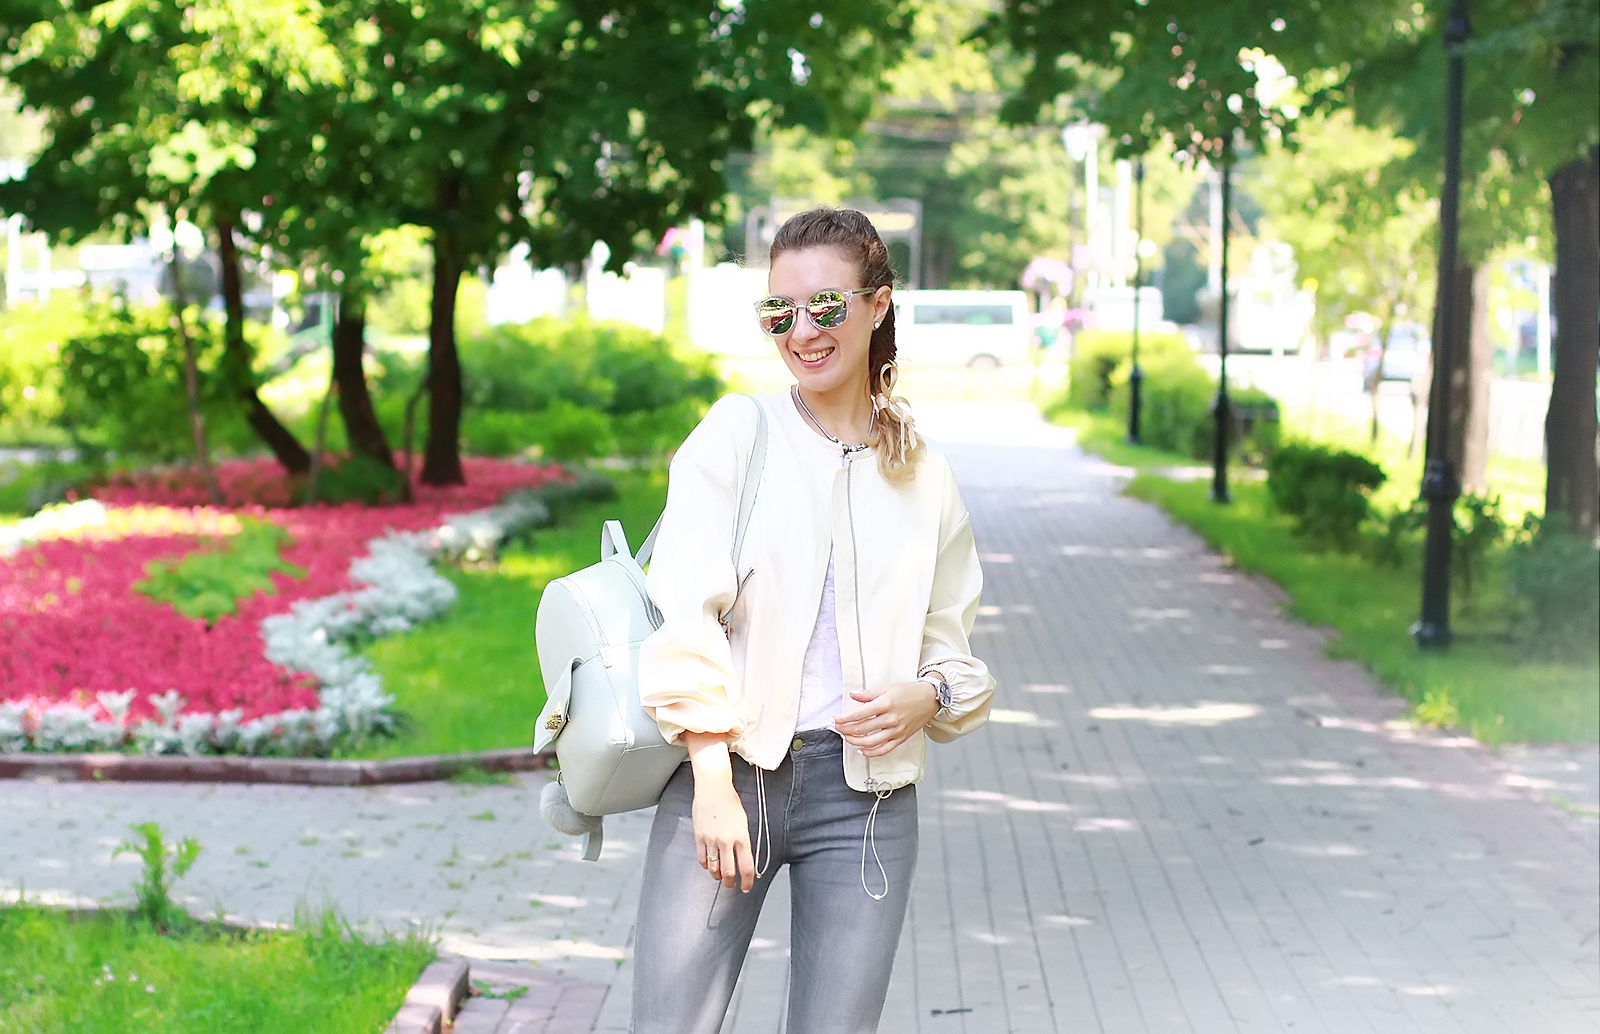 margarita_maslova_ritalifestyle_pastel_sport_look_backpack_streetlook